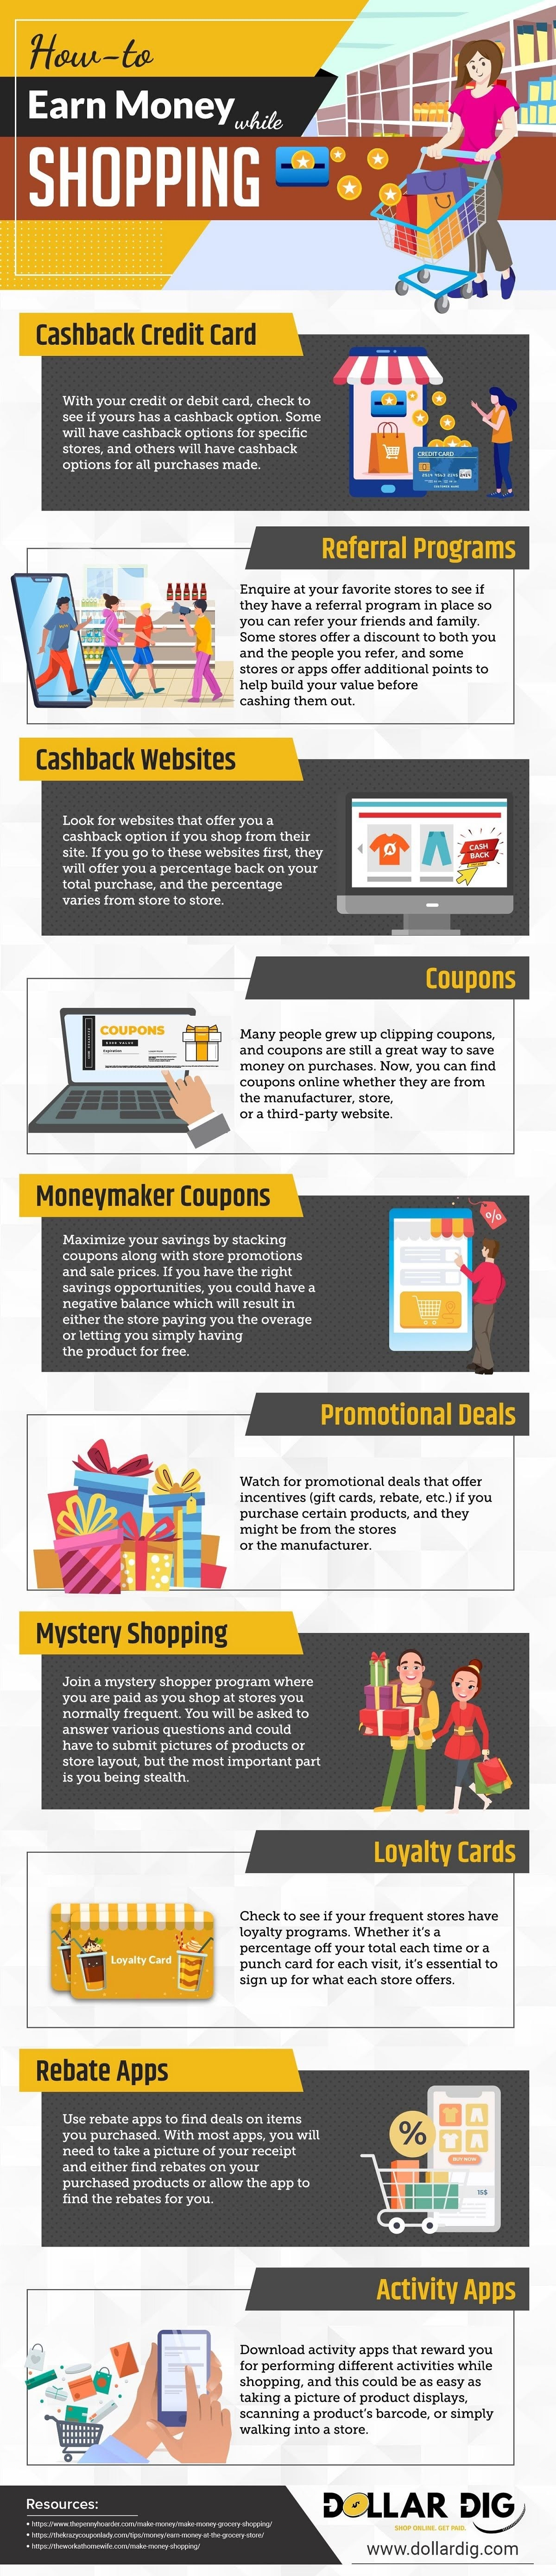 How to Earn Money while Shopping #infographic